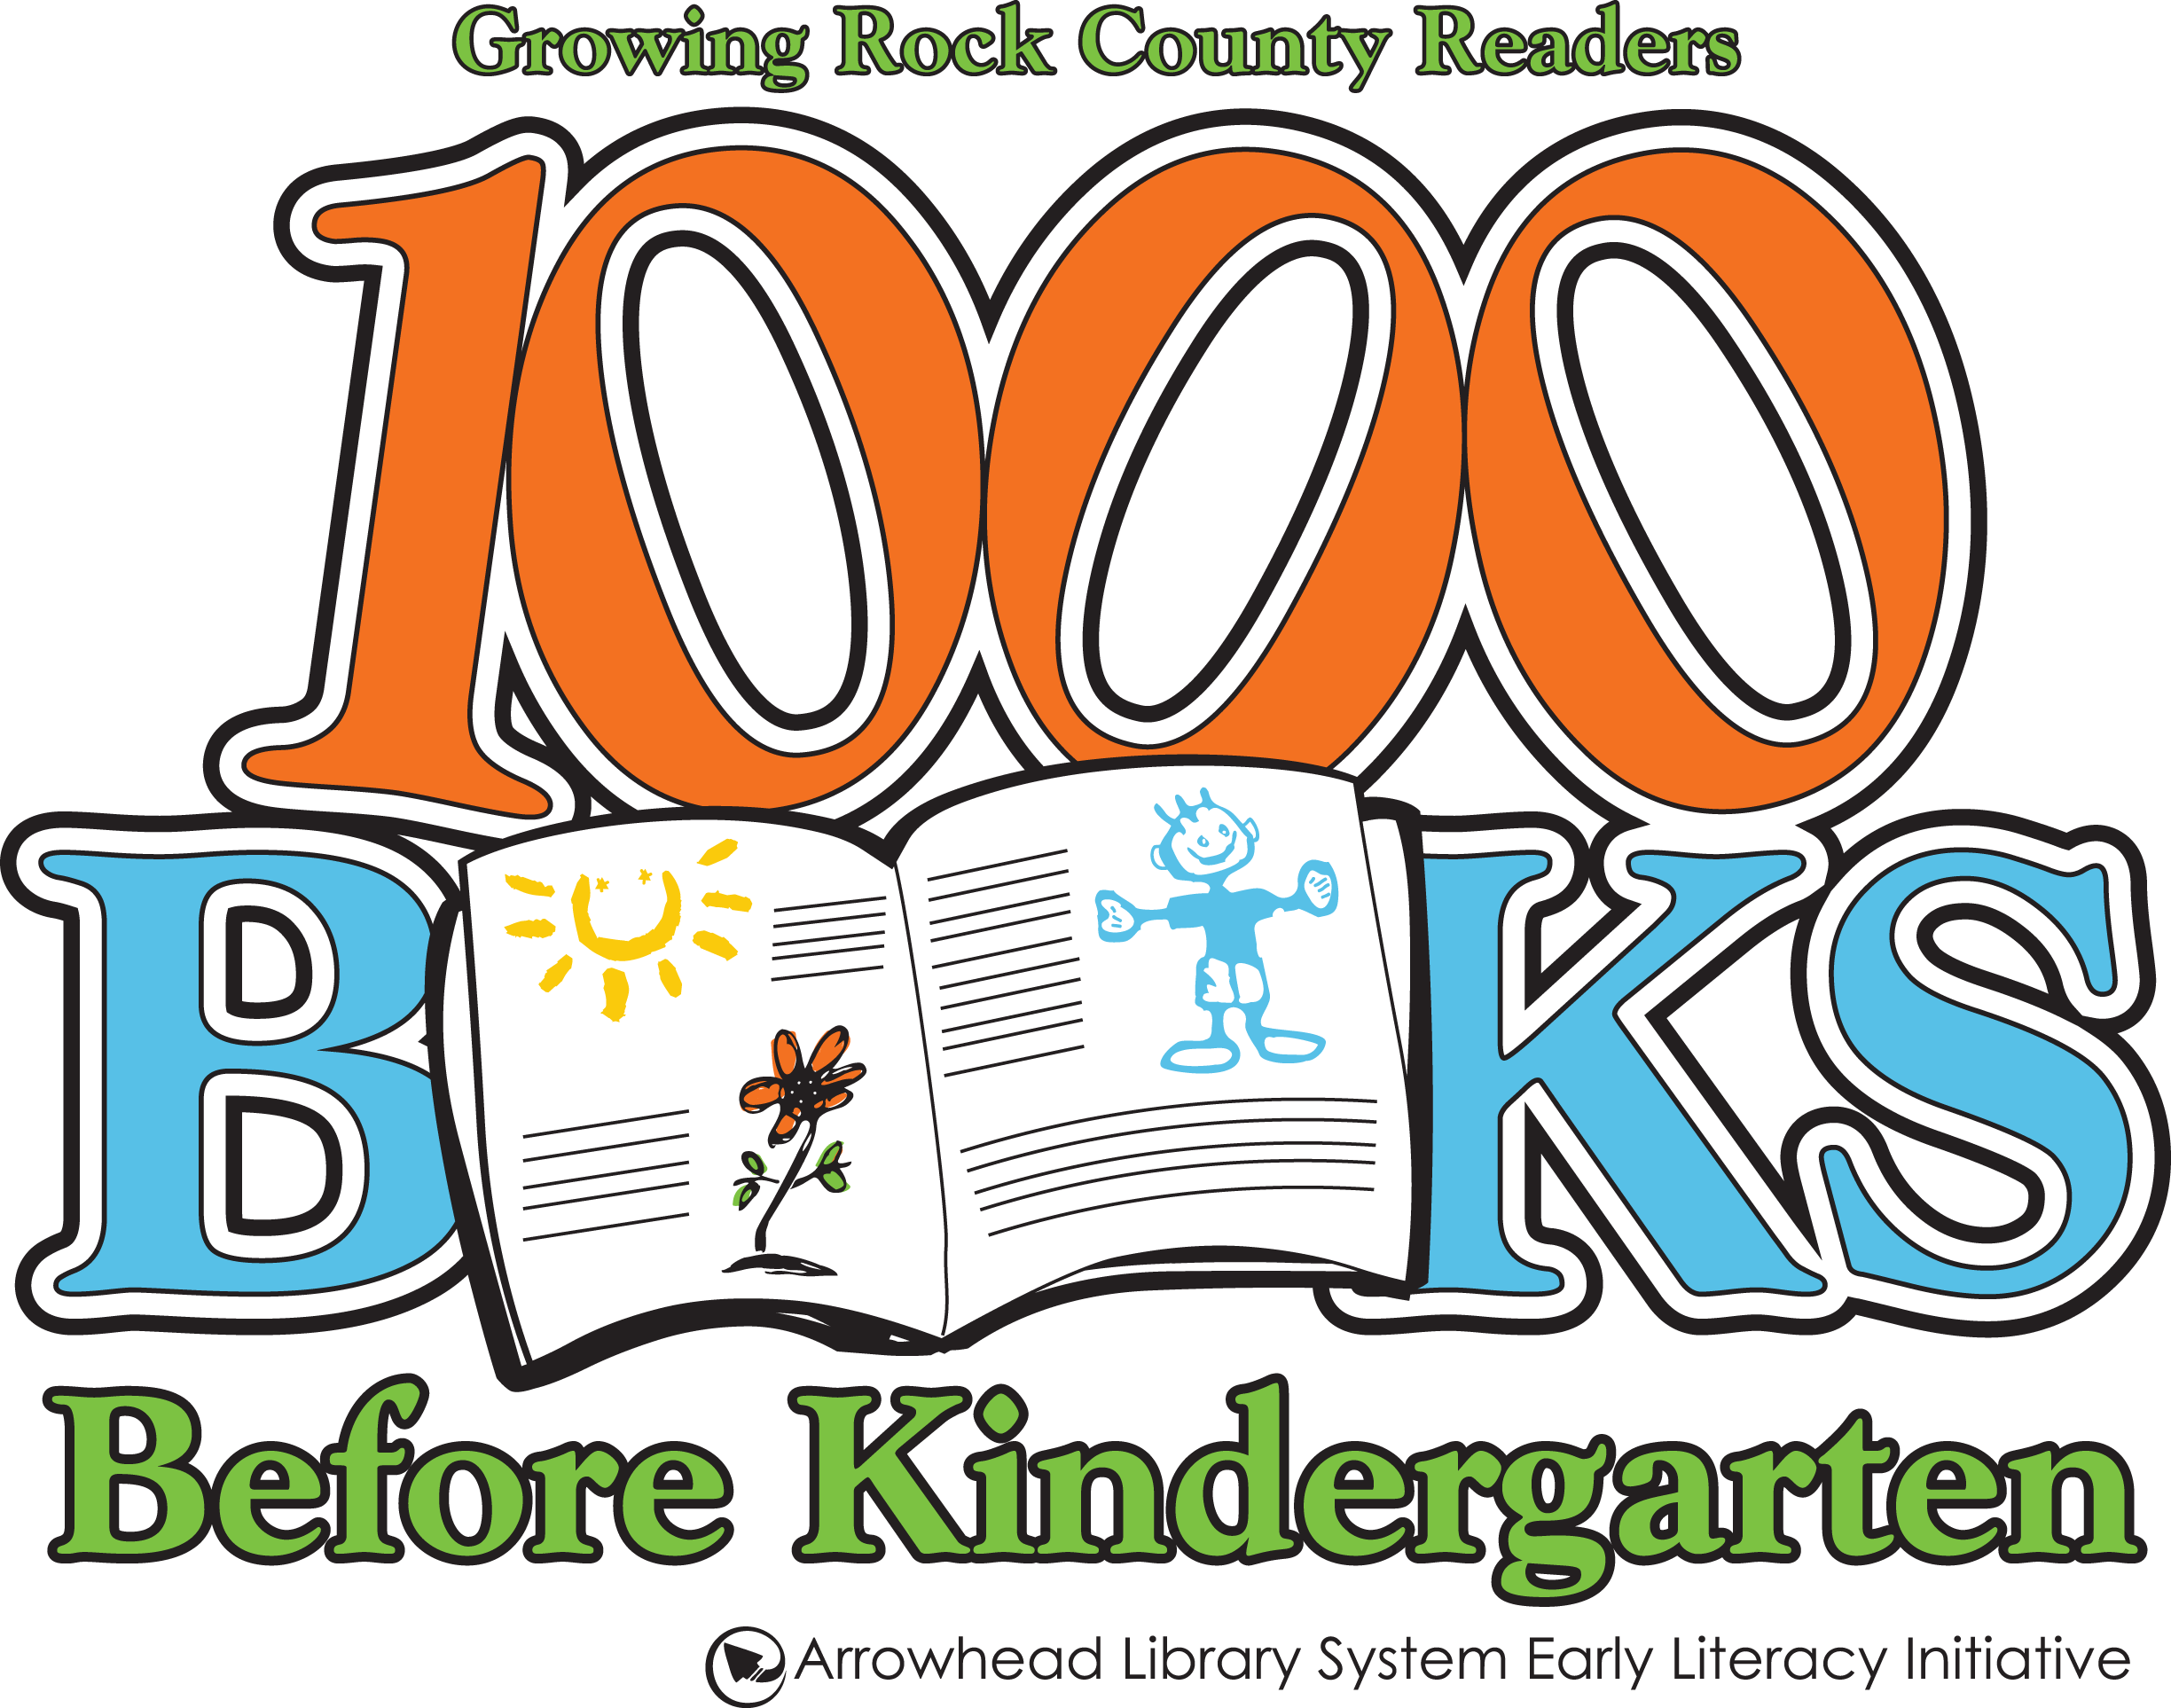 1000 Books Before Kindergarten Arrowhead Library System Logo